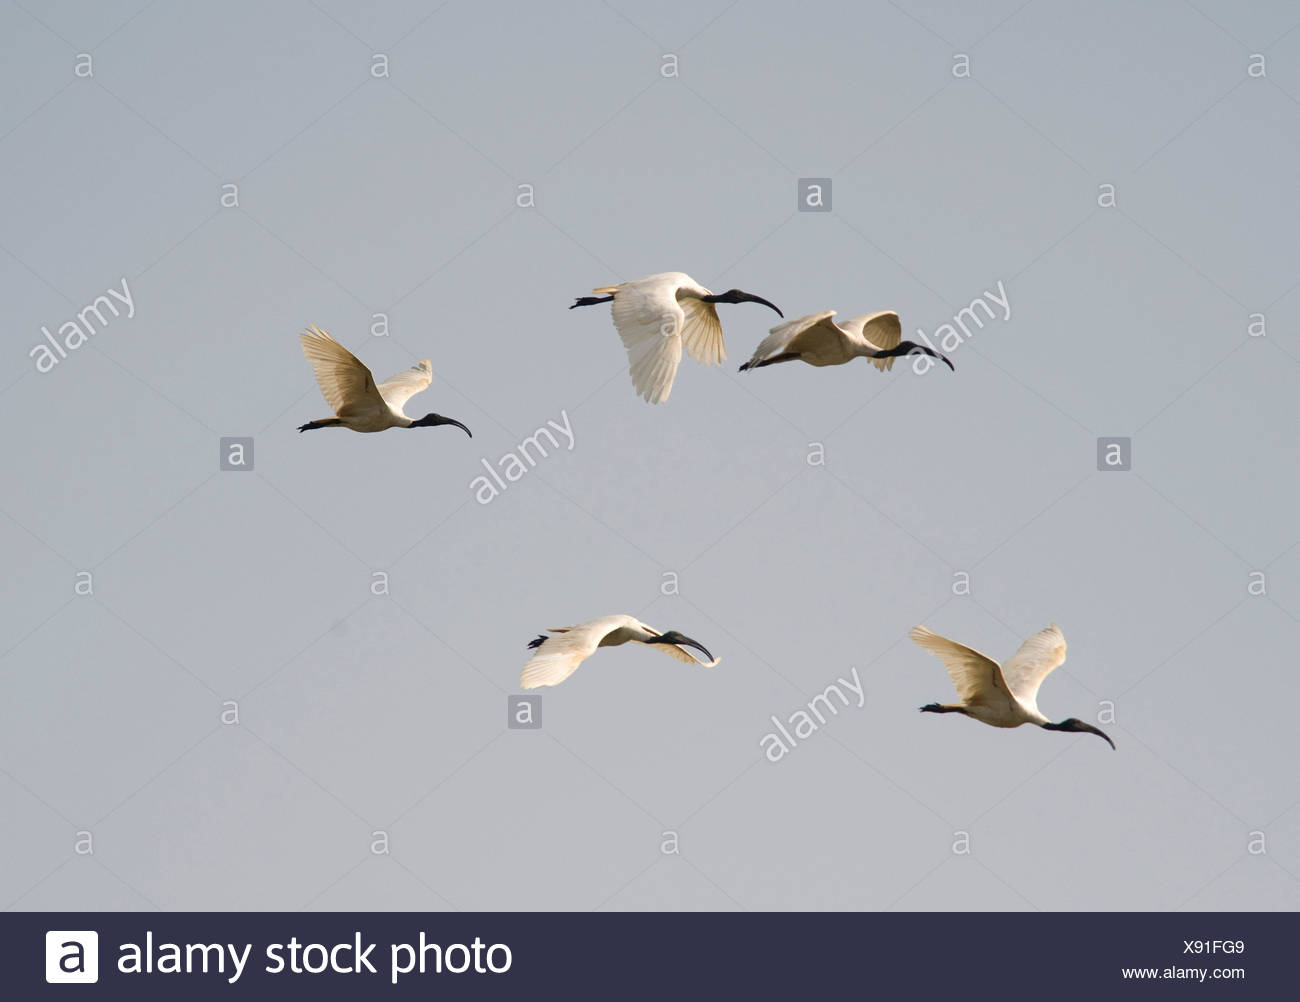 Black Headed Ibis, In flight, Threskiornis melanocephalus, Keoladeo National Park or Keoladeo Ghana National Park formerly known as the Bharatpur Bird - Stock Image